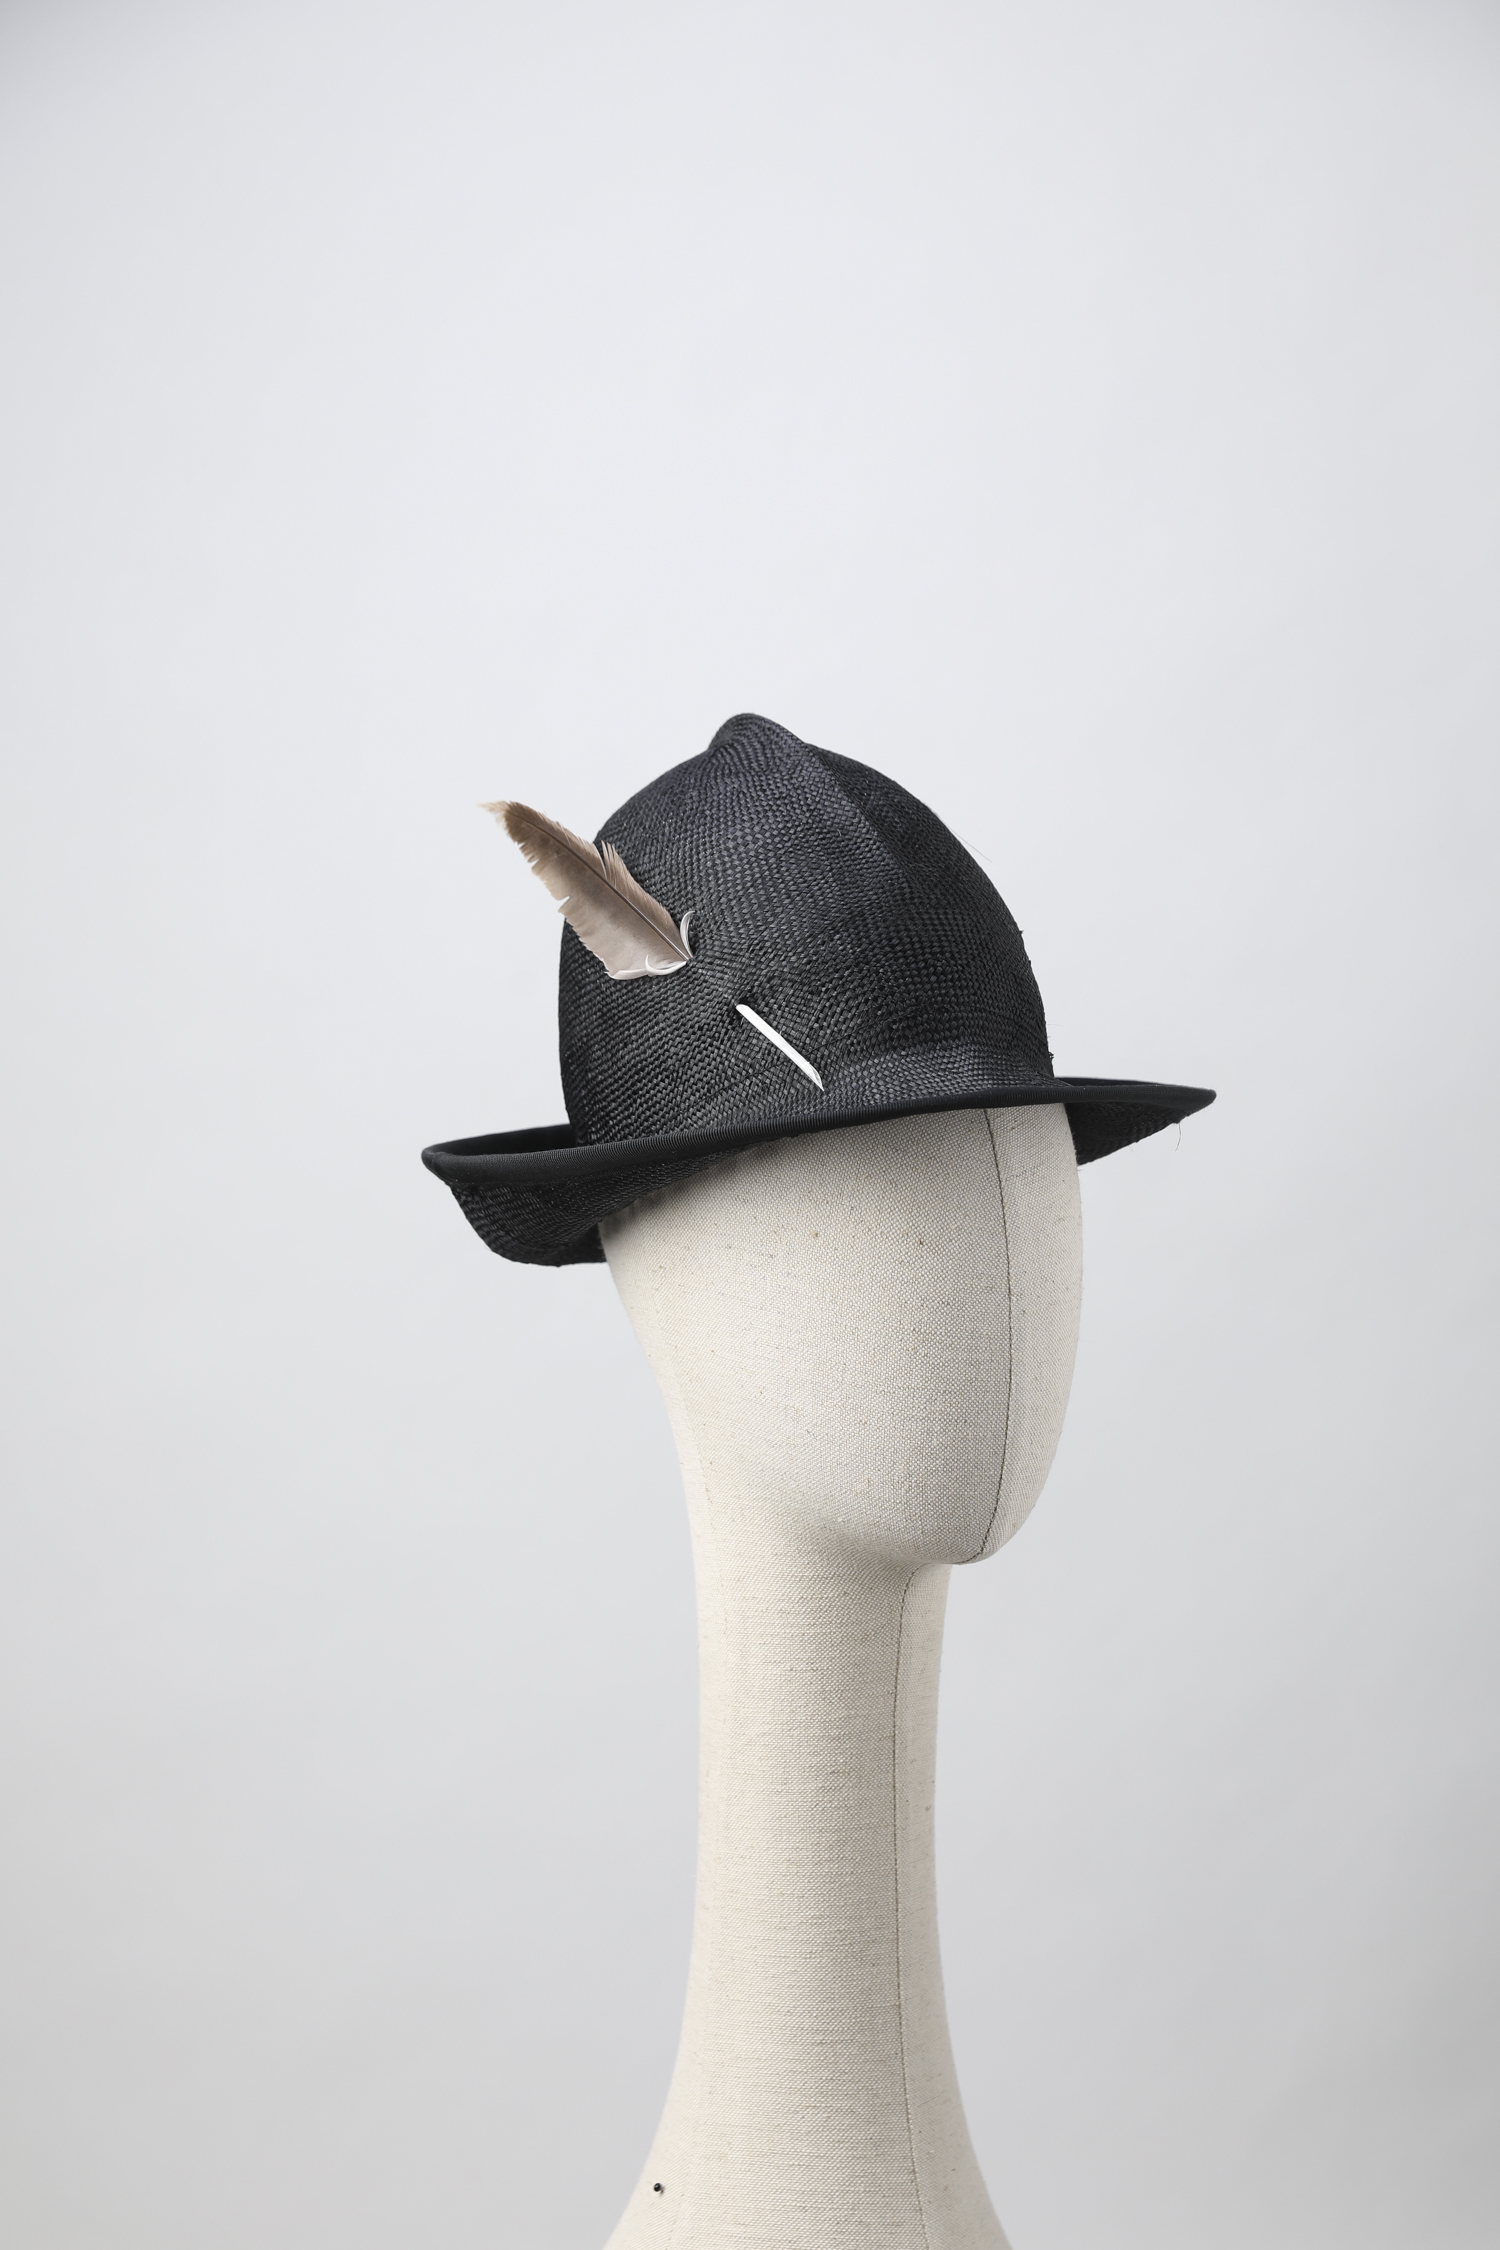 Copy of Jaycow Millinery by Jay Cheng Sample Stock 2019 (66).jpg